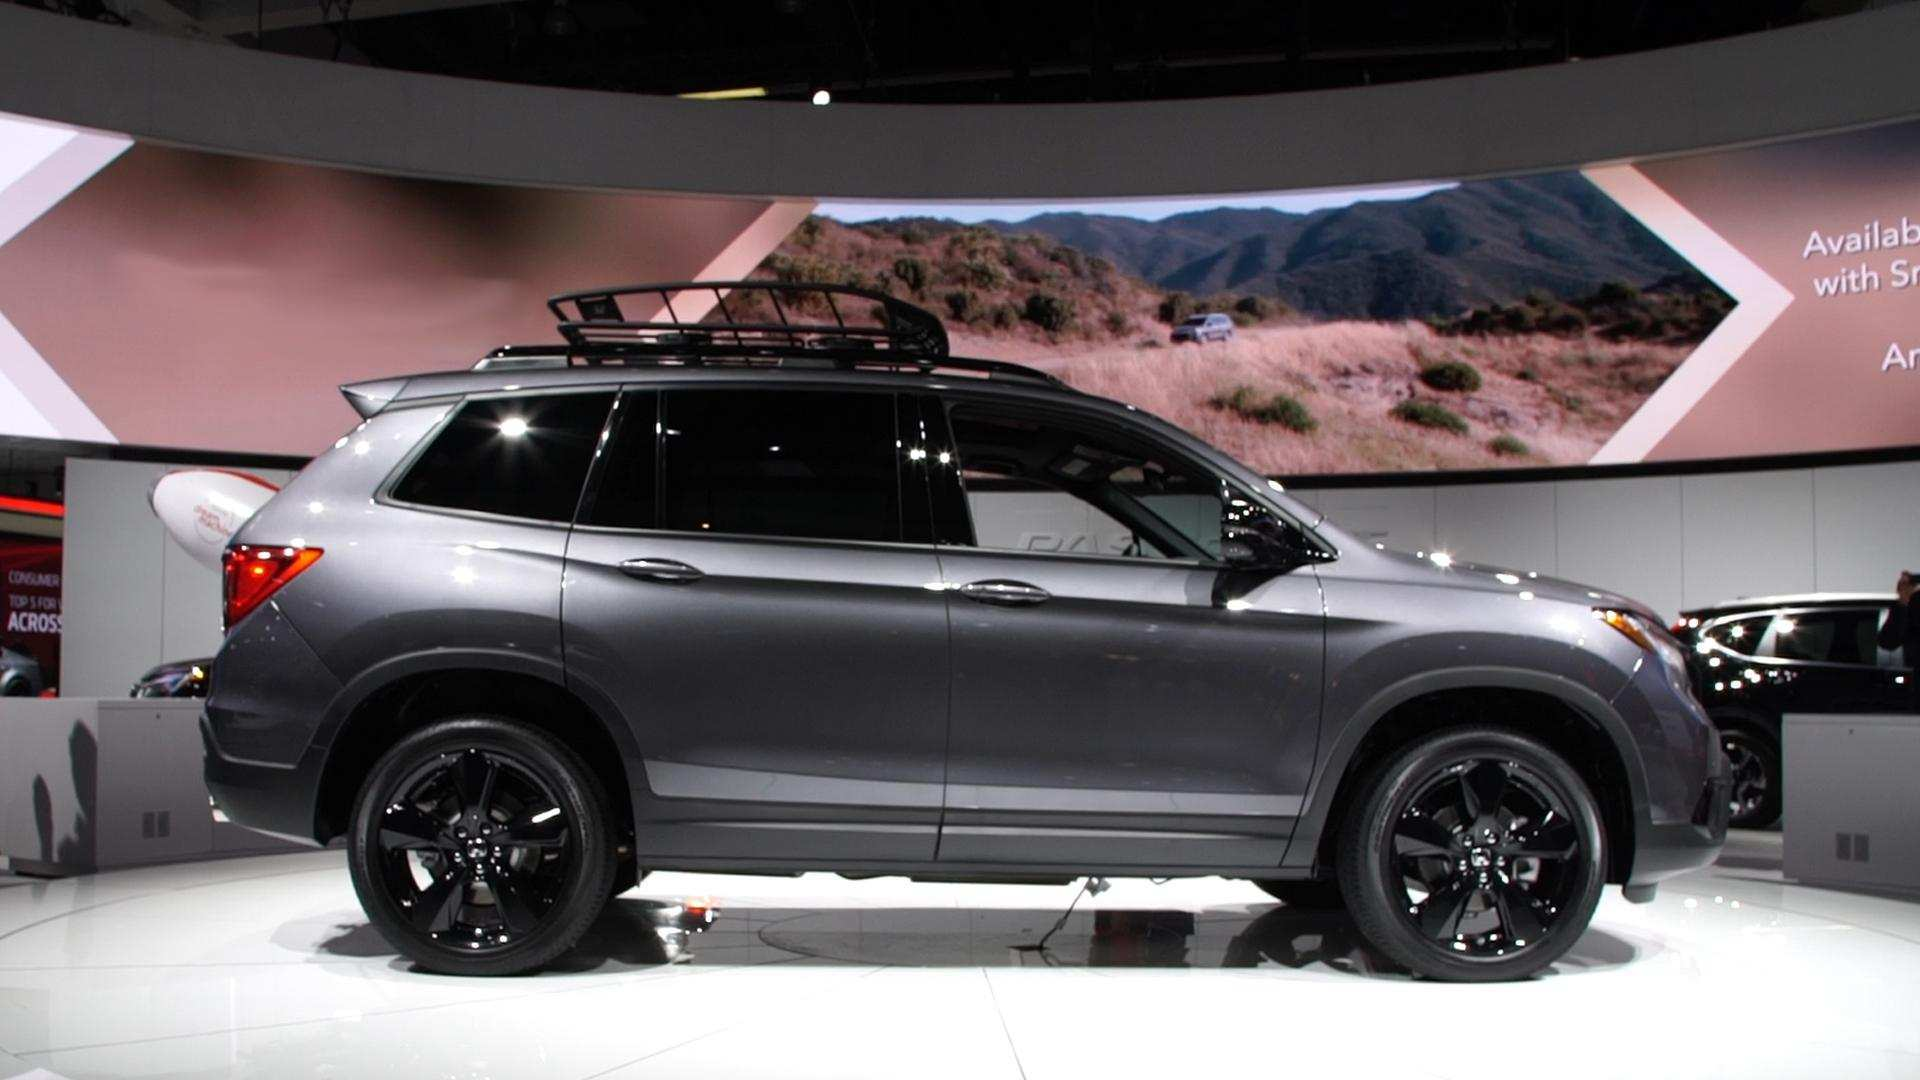 24 New 2019 Honda Passport Reviews Overview by 2019 Honda Passport Reviews